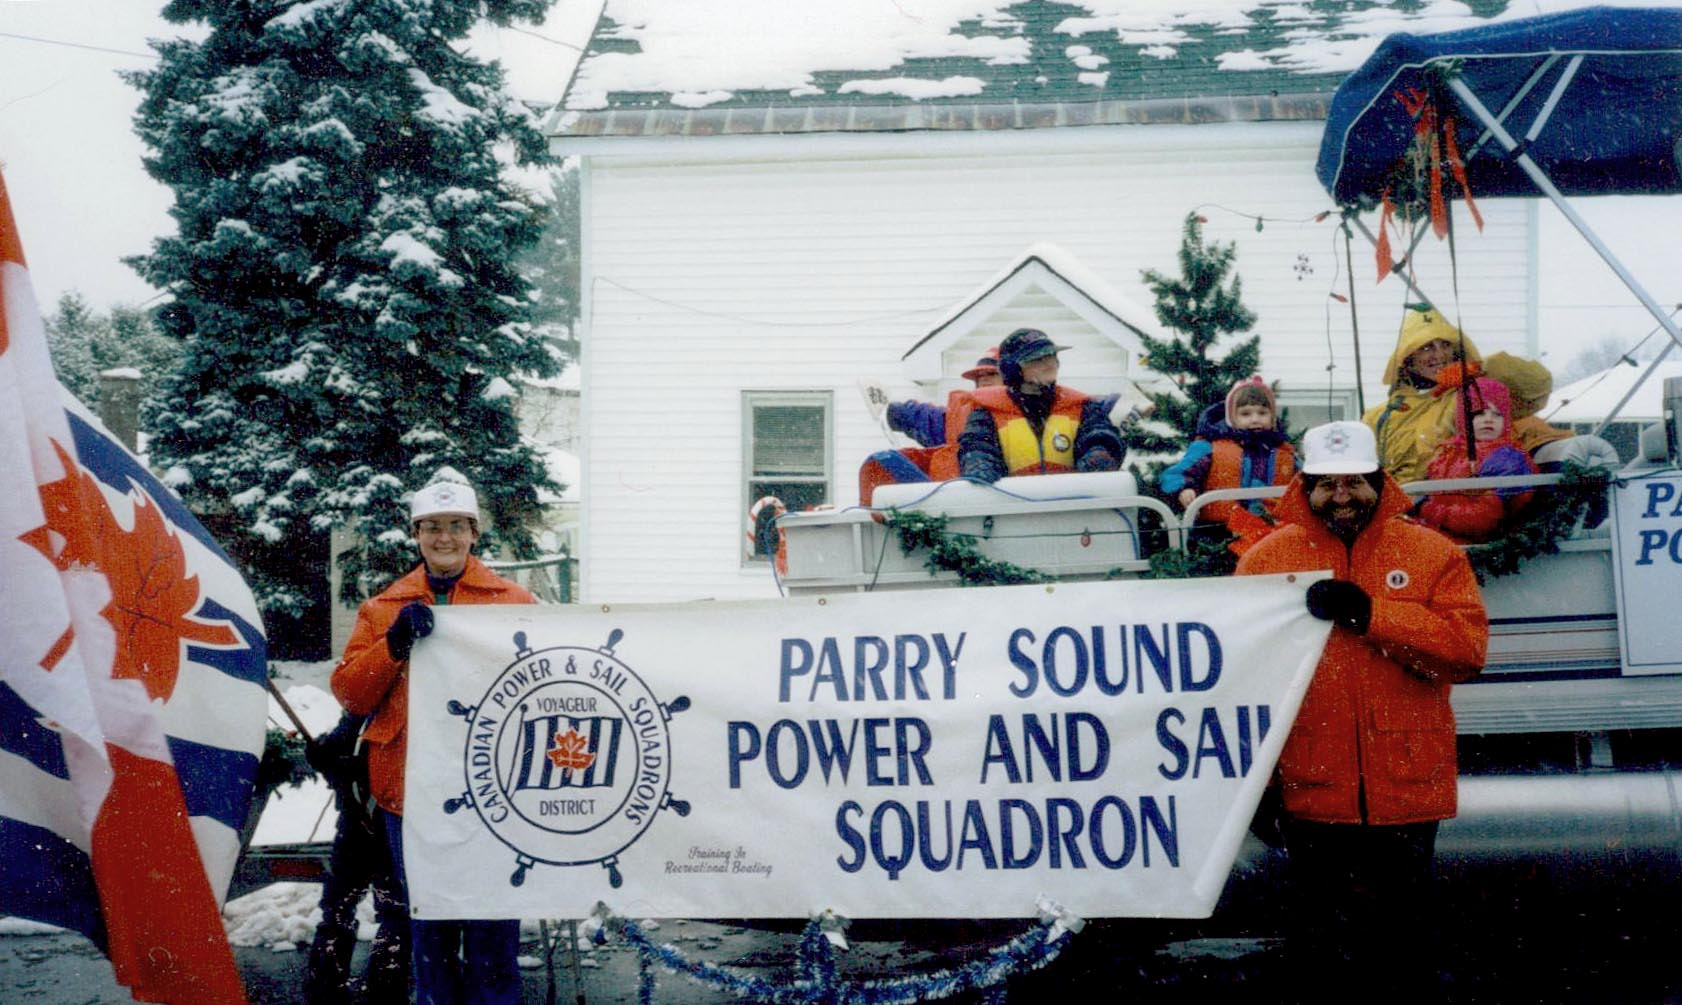 Parry Sound Power and Sail Squadron - Christmas Parade